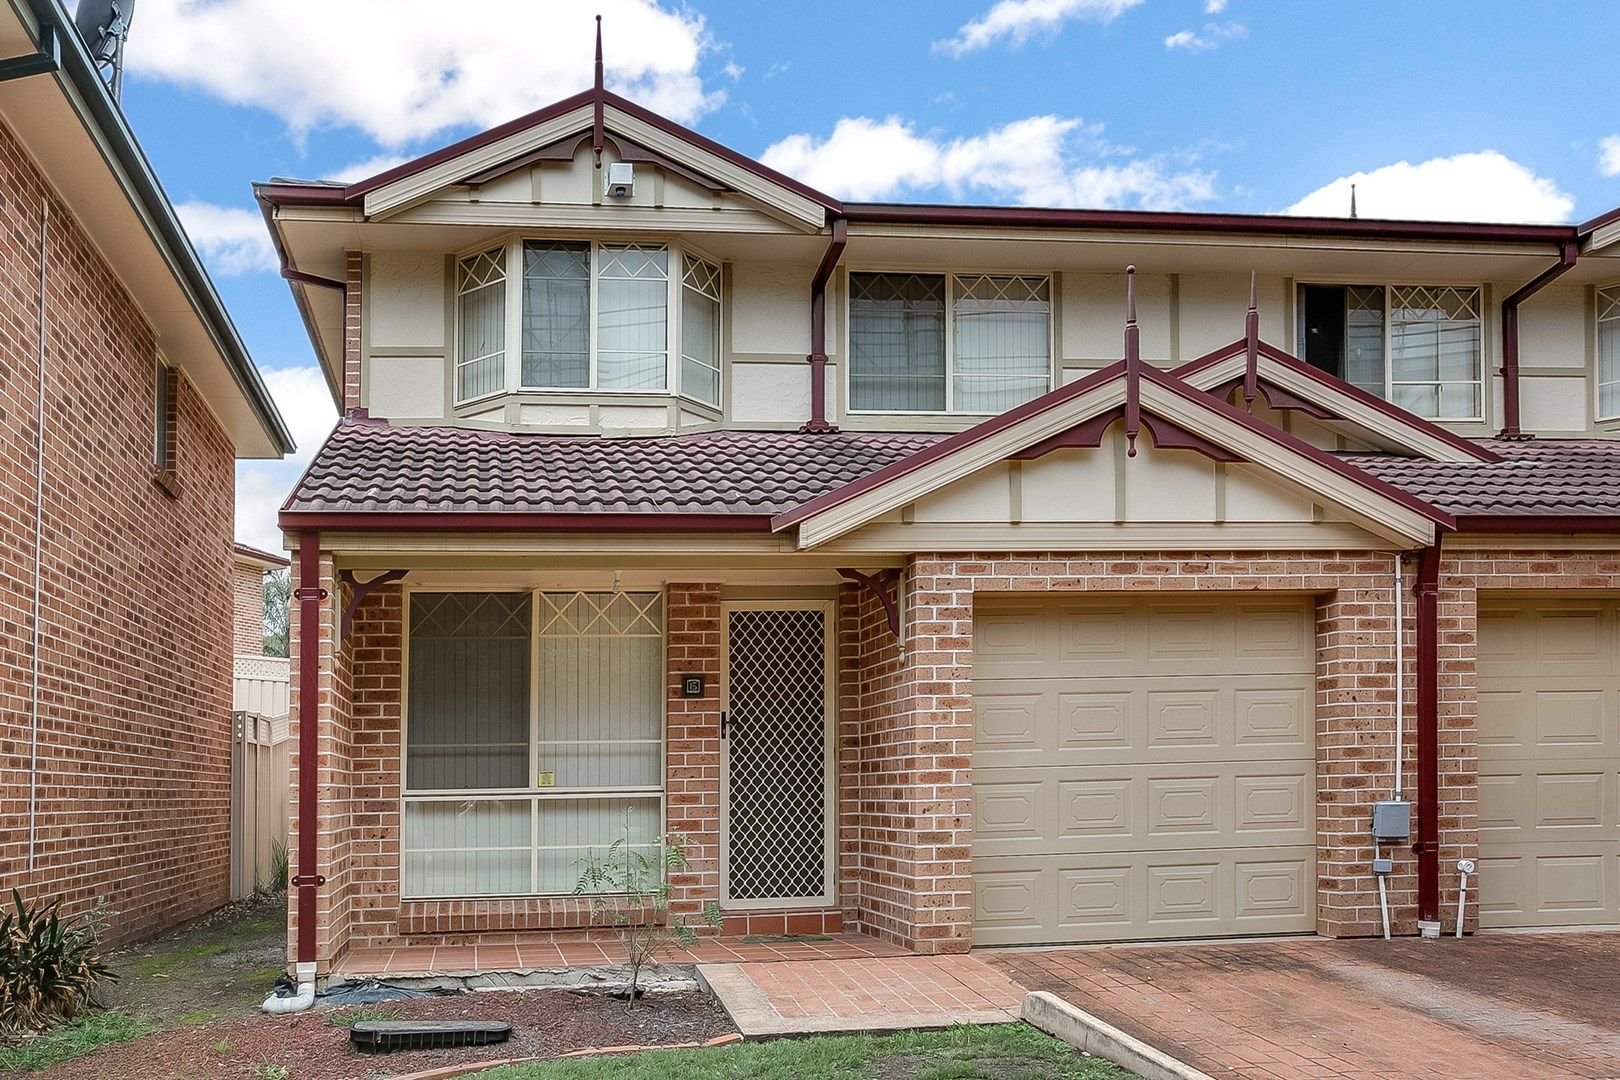 15/132 Coreen Avenue, Penrith NSW 2750, Image 0